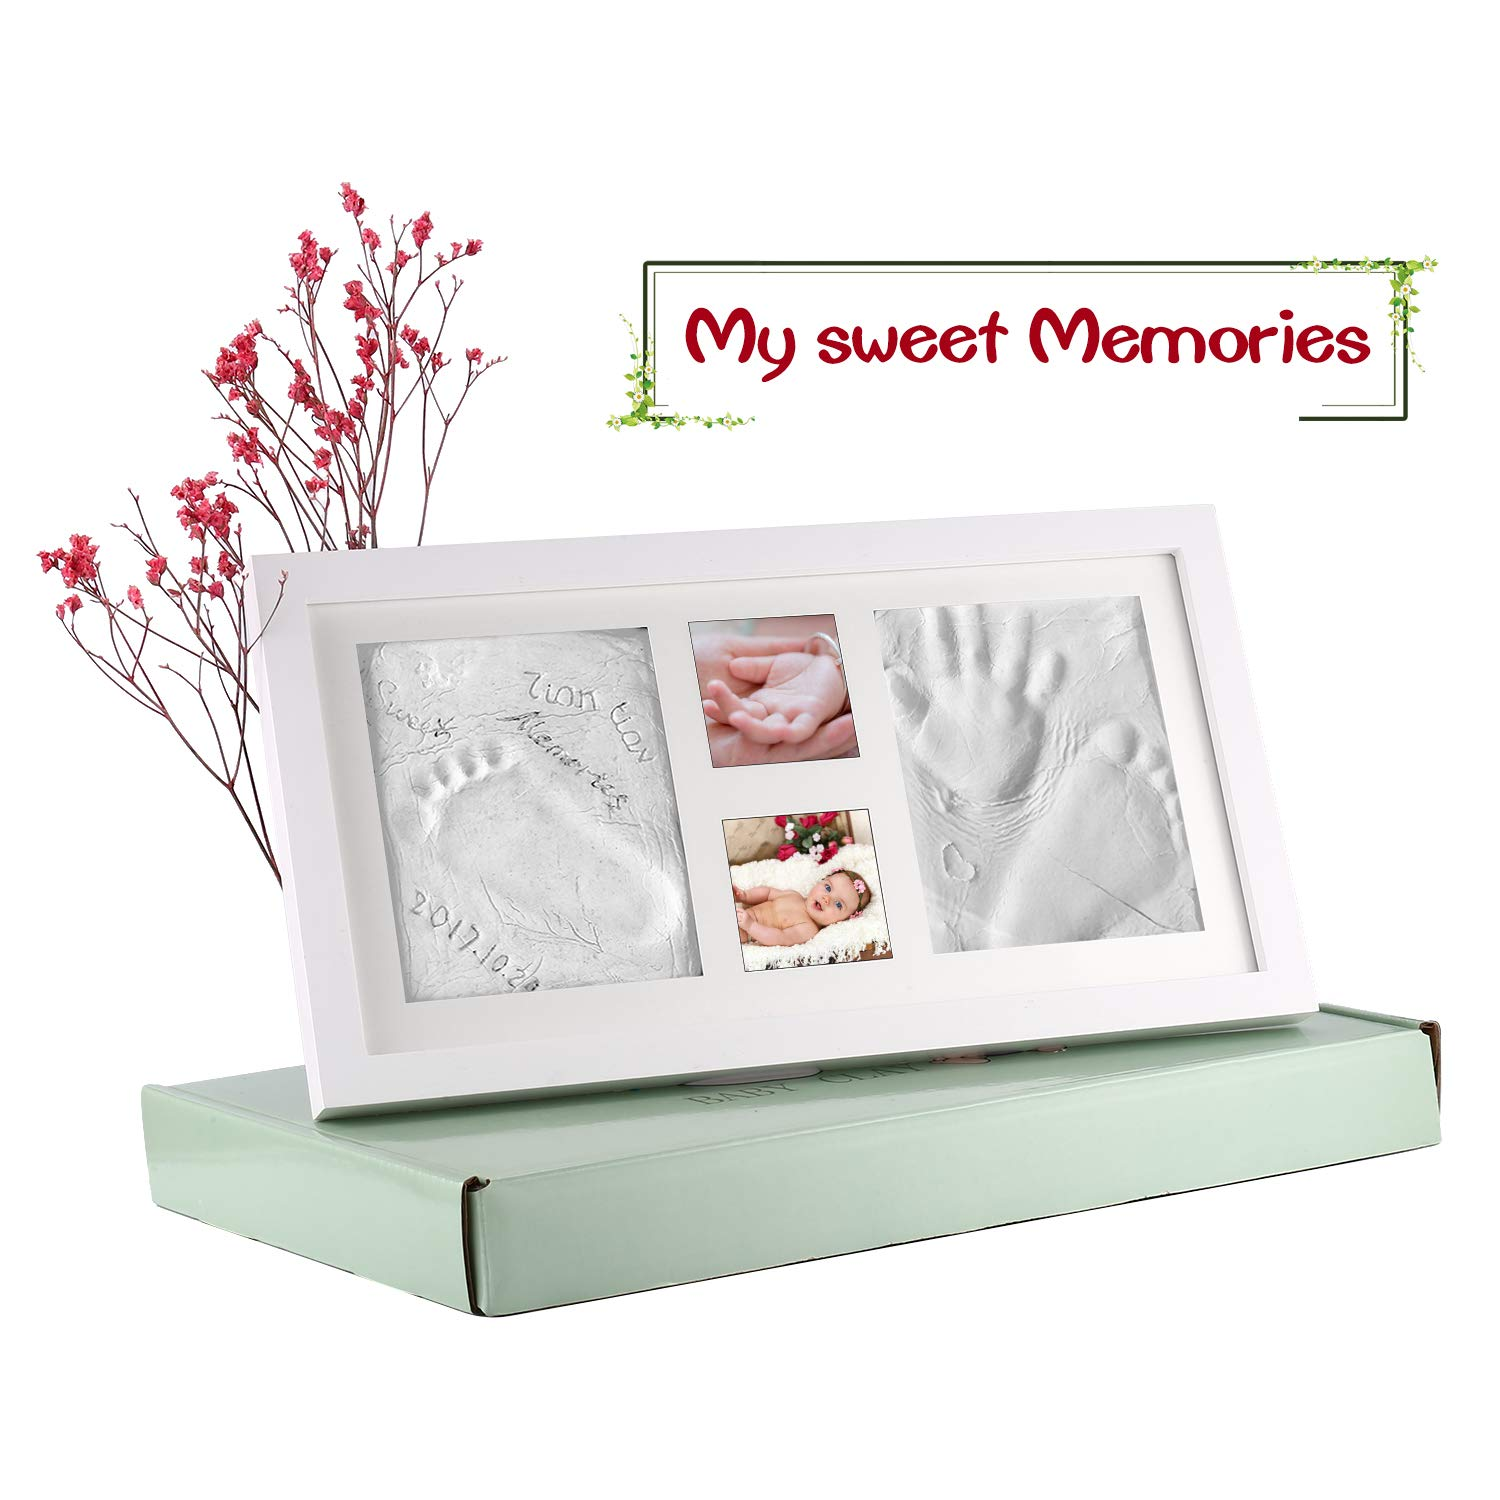 Baby Handprint and Footprint Imprint Set Wood Picture Frame with Plaster Print for Newborn Baby Shower Or Baptism Gift Size 41x23x2cm (White) Hoden